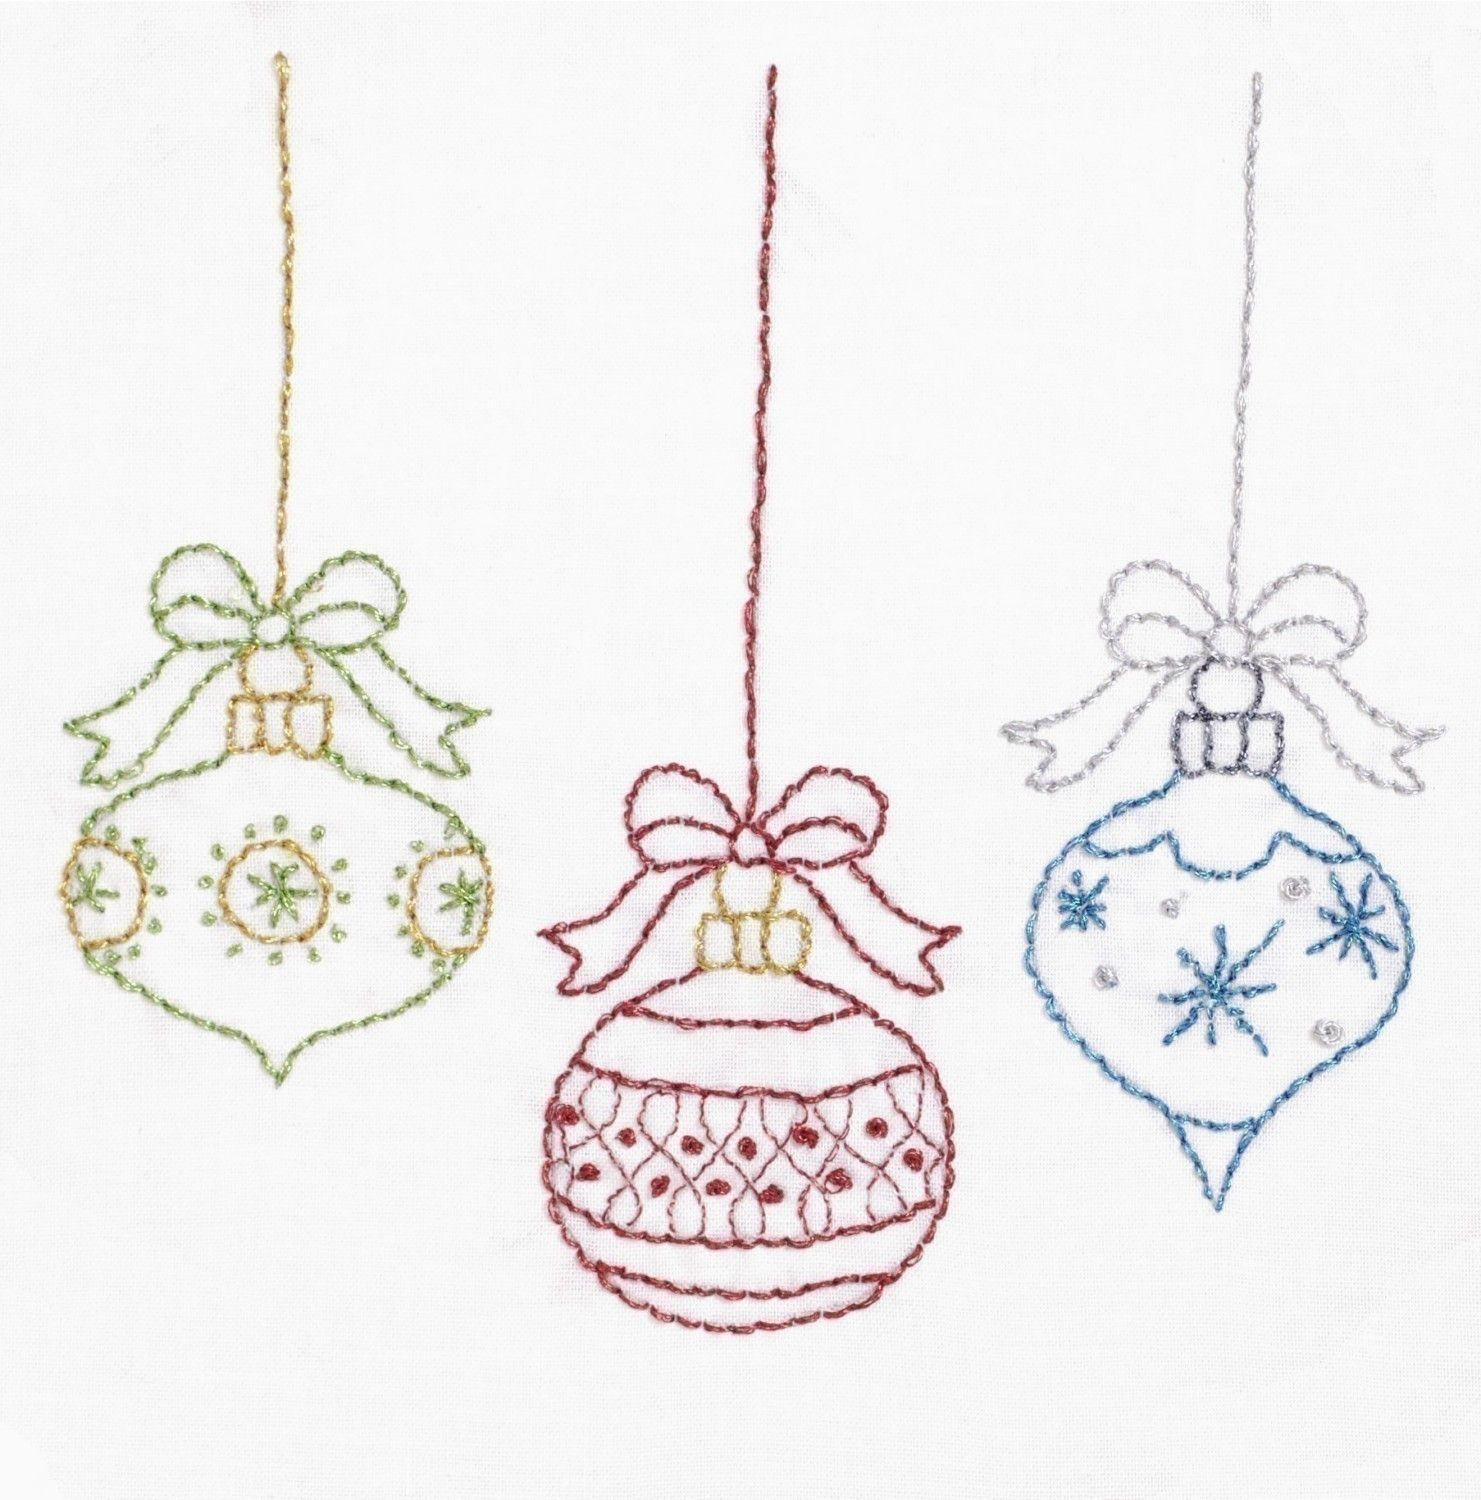 Free Christmas Embroidery Patterns Exquisite Christmas Hand Embroidery Designs Most Free Christmas Ideas